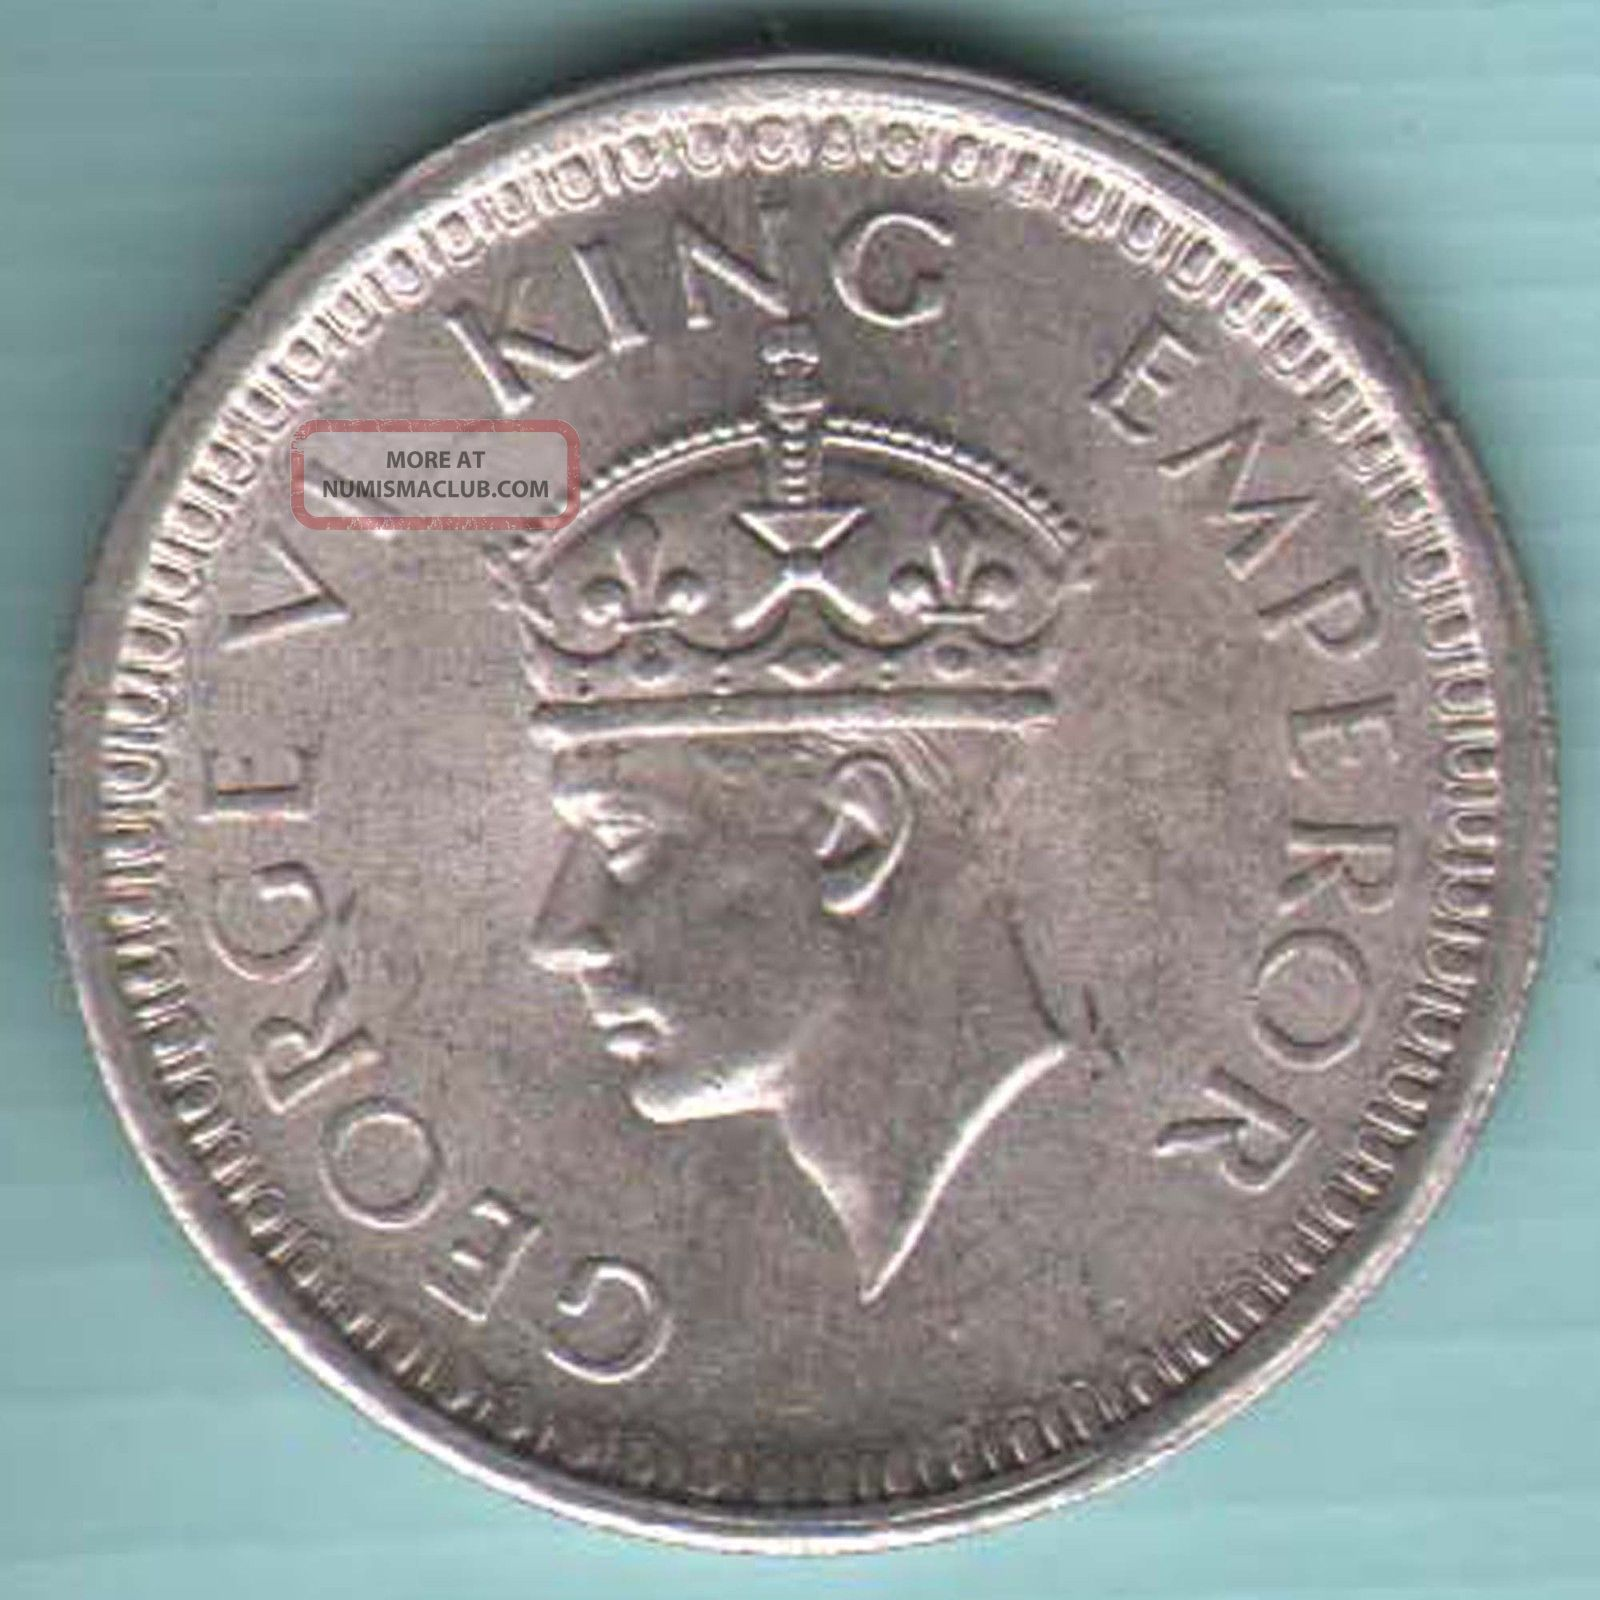 British India - 1945 - Lahore - One Rupee - Kg Vi - Rare Silver Coin - K22 India photo